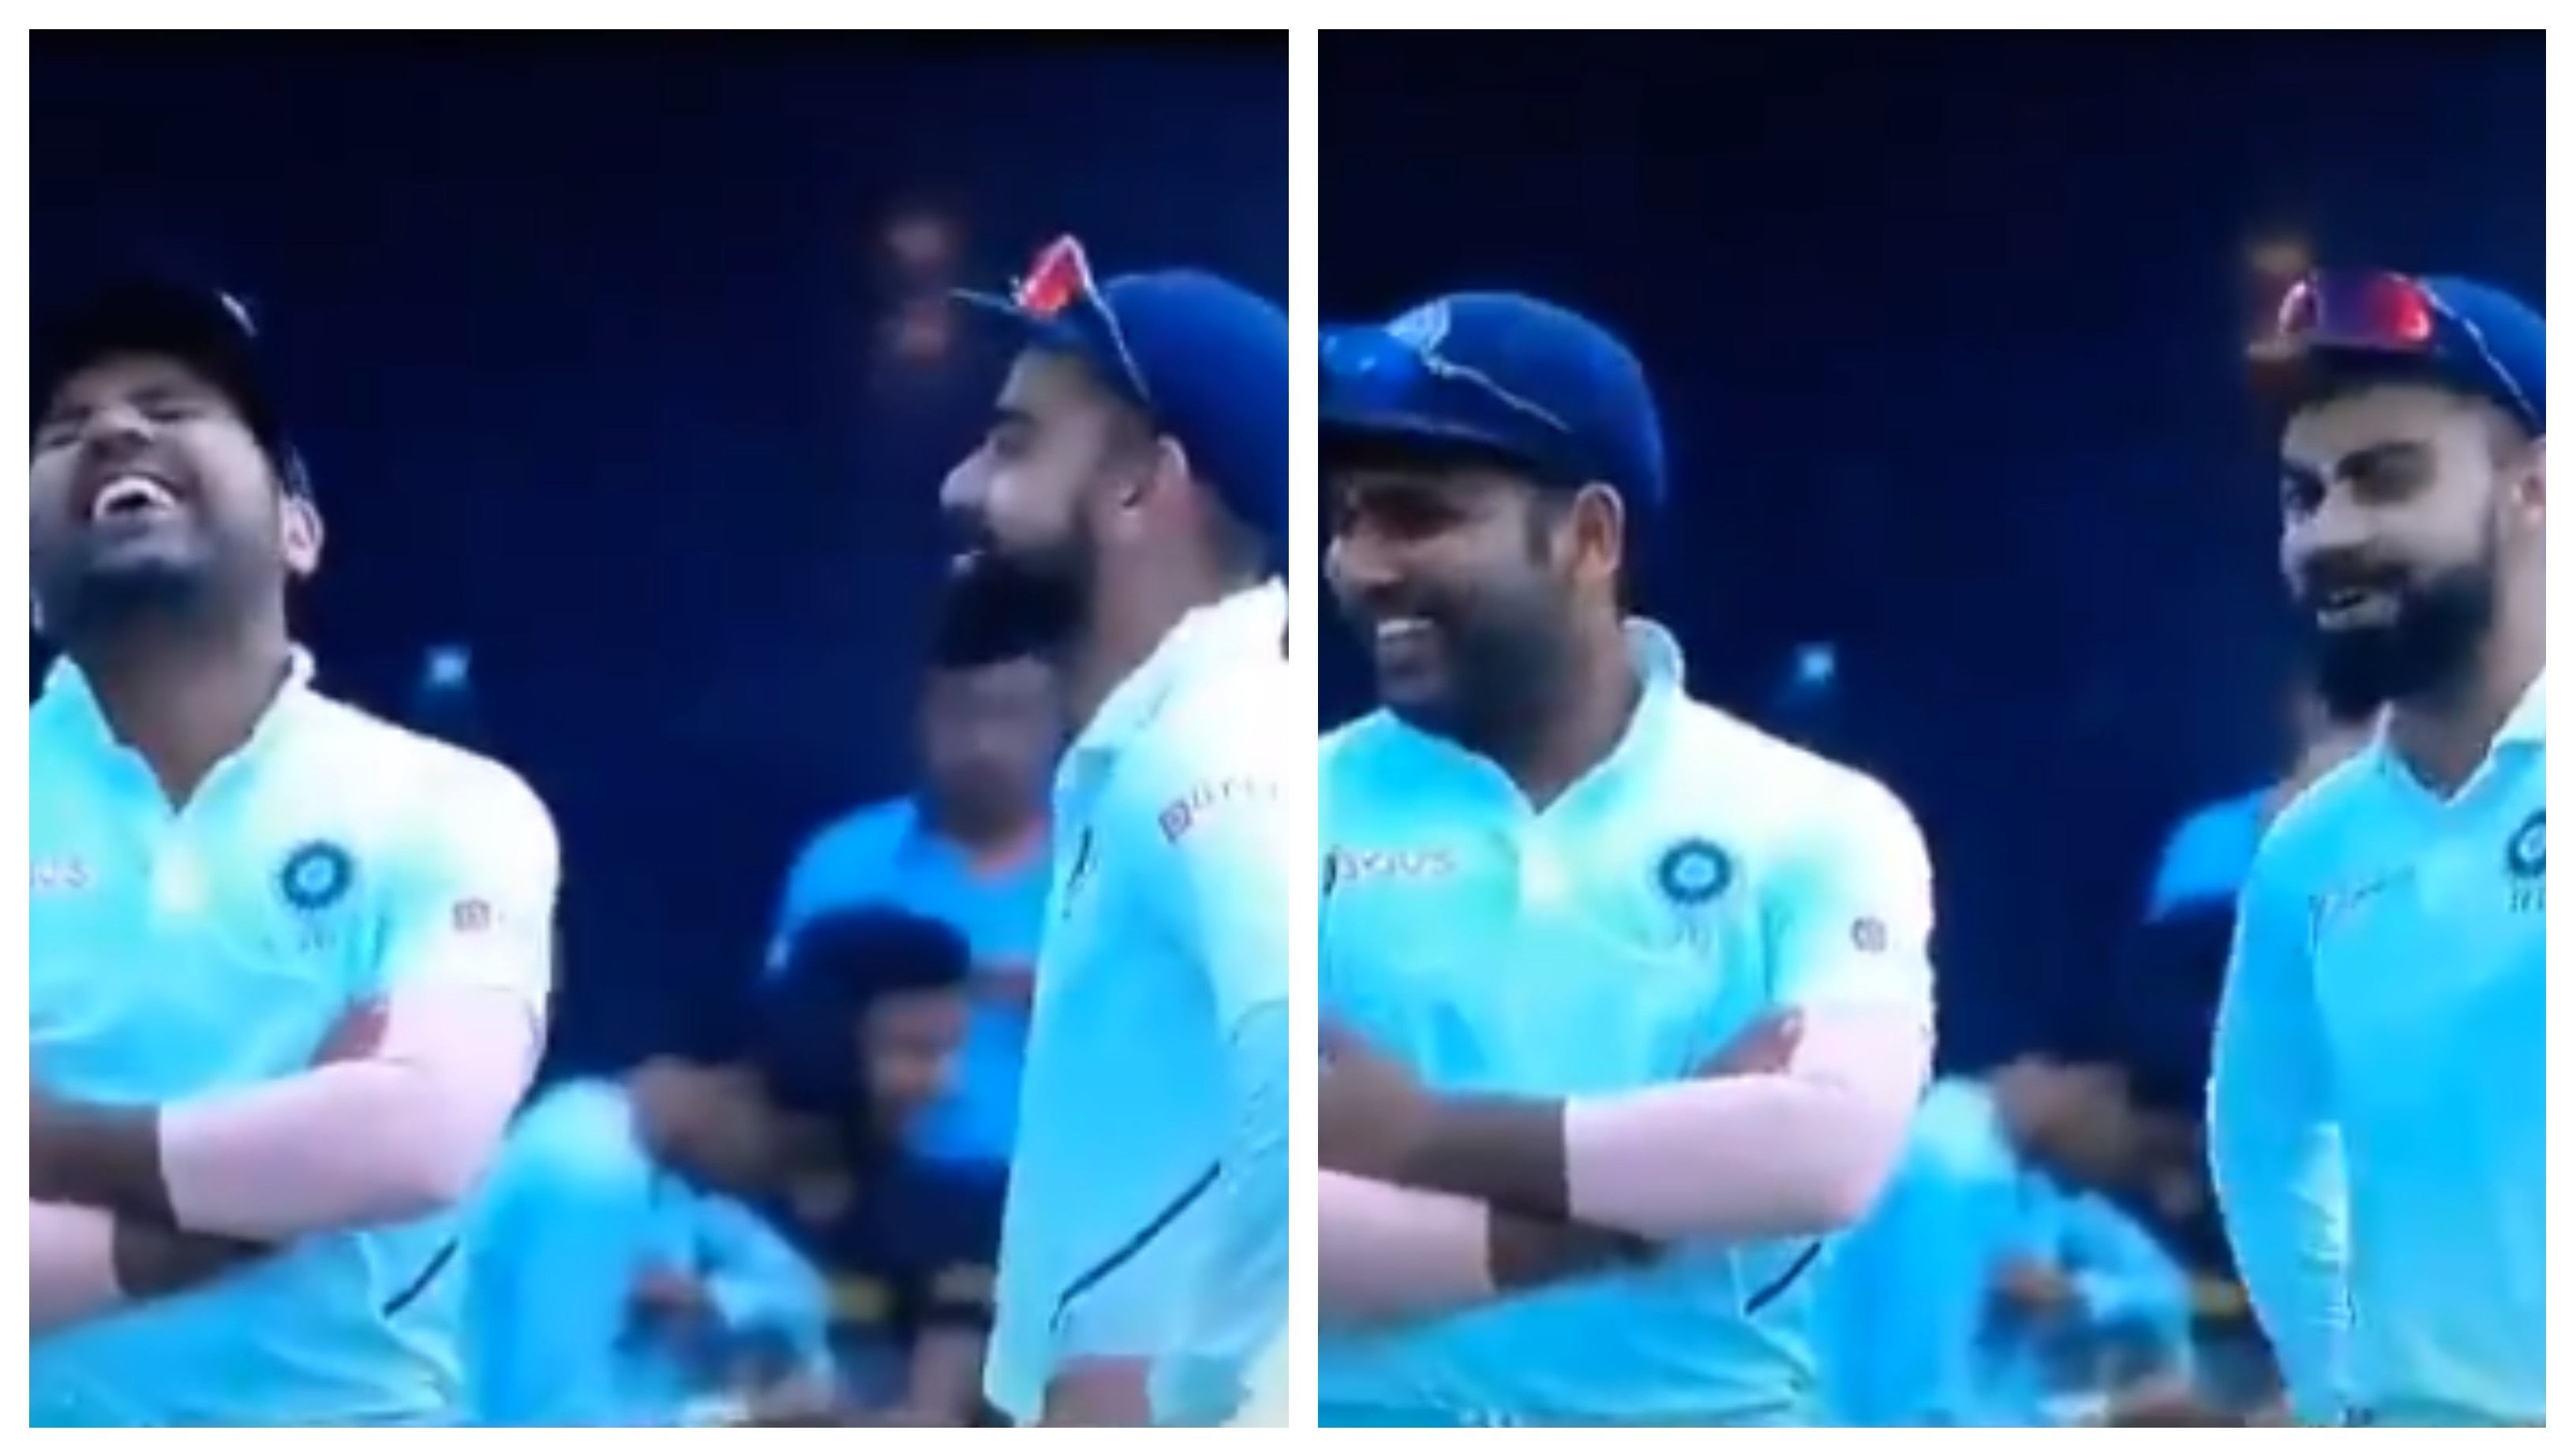 IND v SA 2019: WATCH – Kohli and Rohit's heartwarming laughter while fielding in the slip cordon